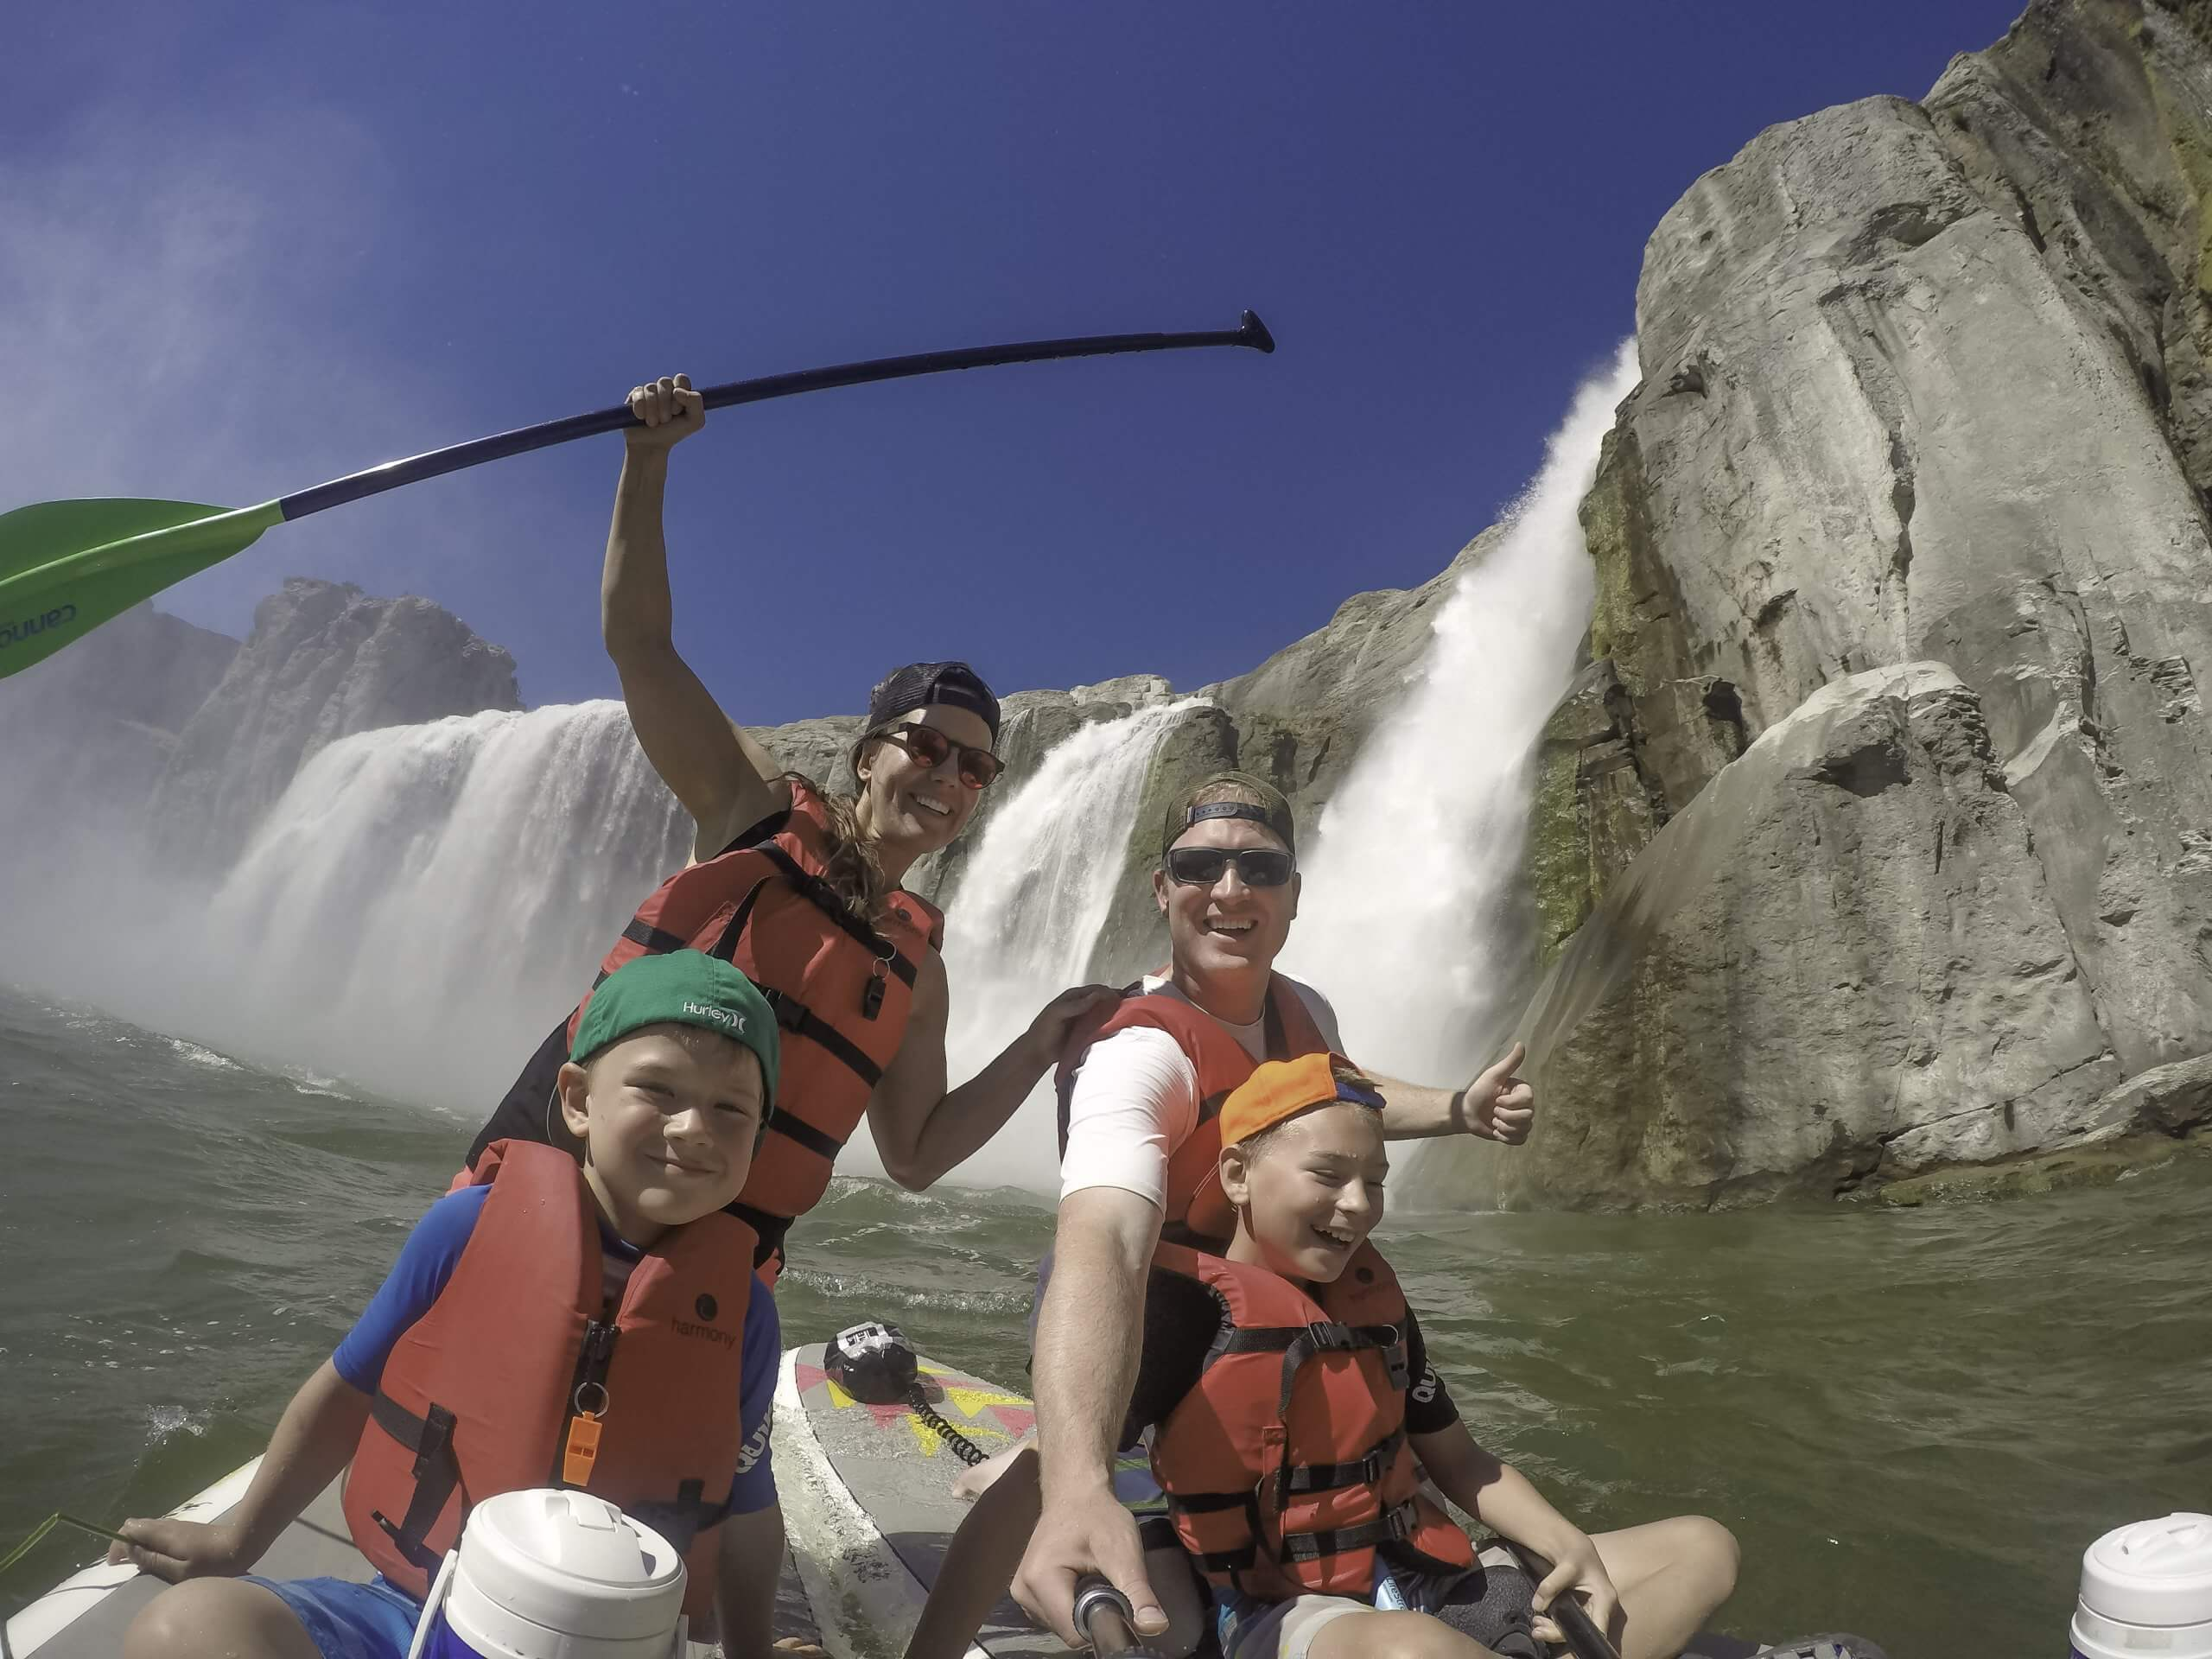 family on paddle board in front of waterfall